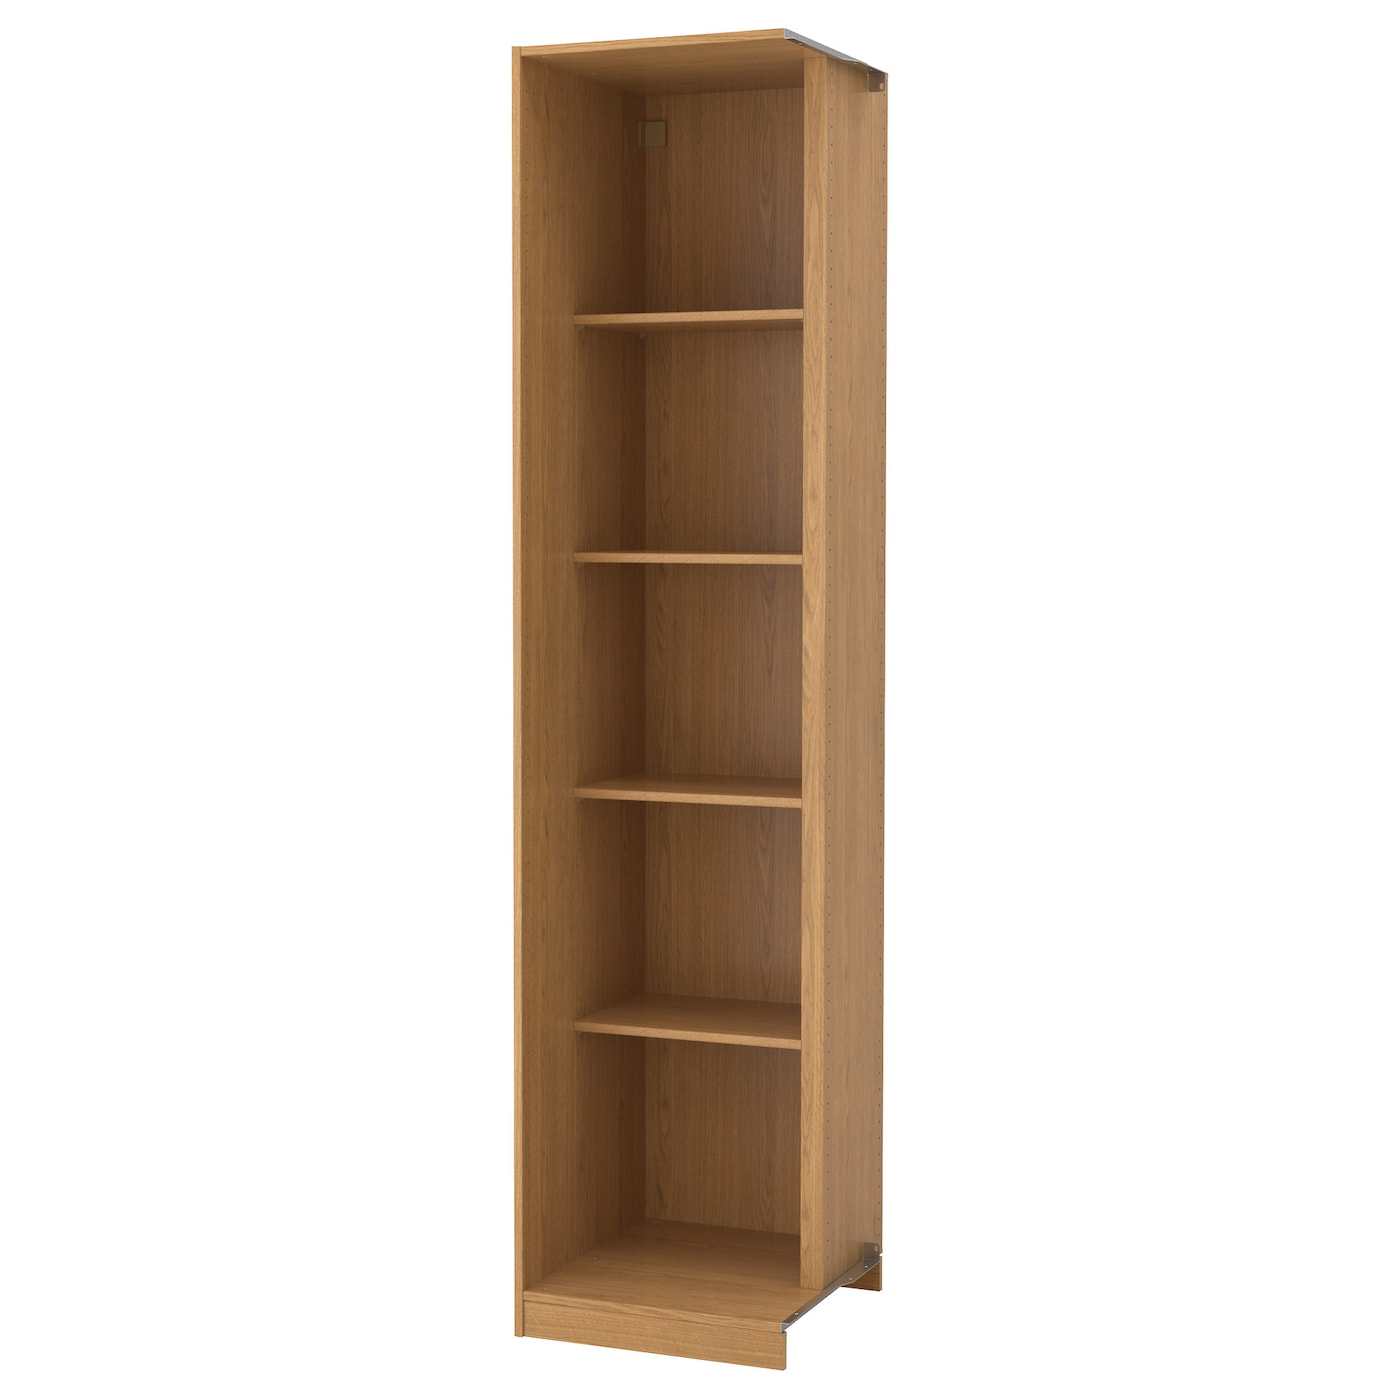 IKEA PAX add-on corner unit with 4 shelves